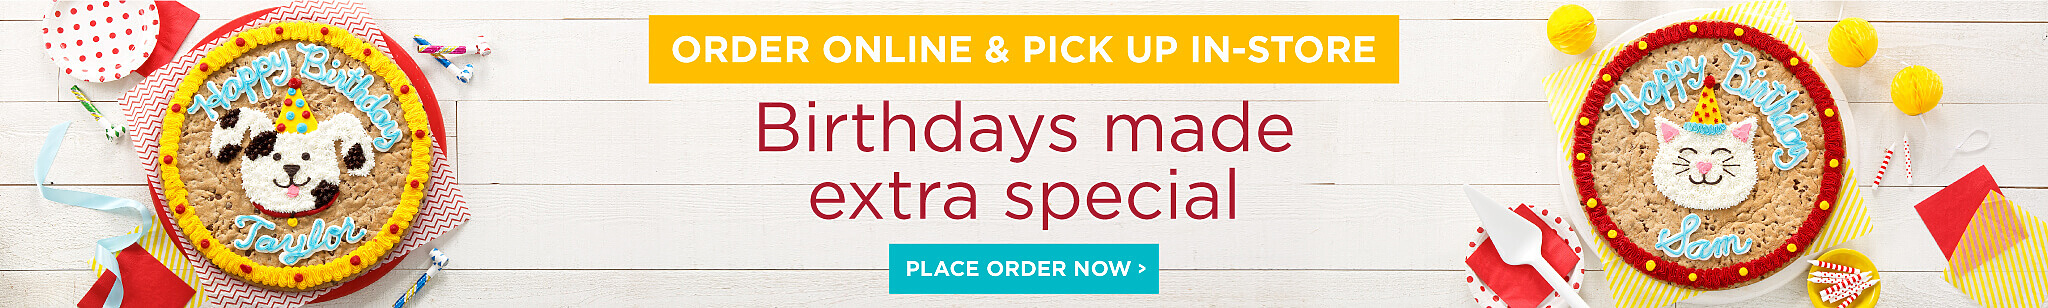 Birthdays made extra special. Order Online and Pick up in store. Place your order now.